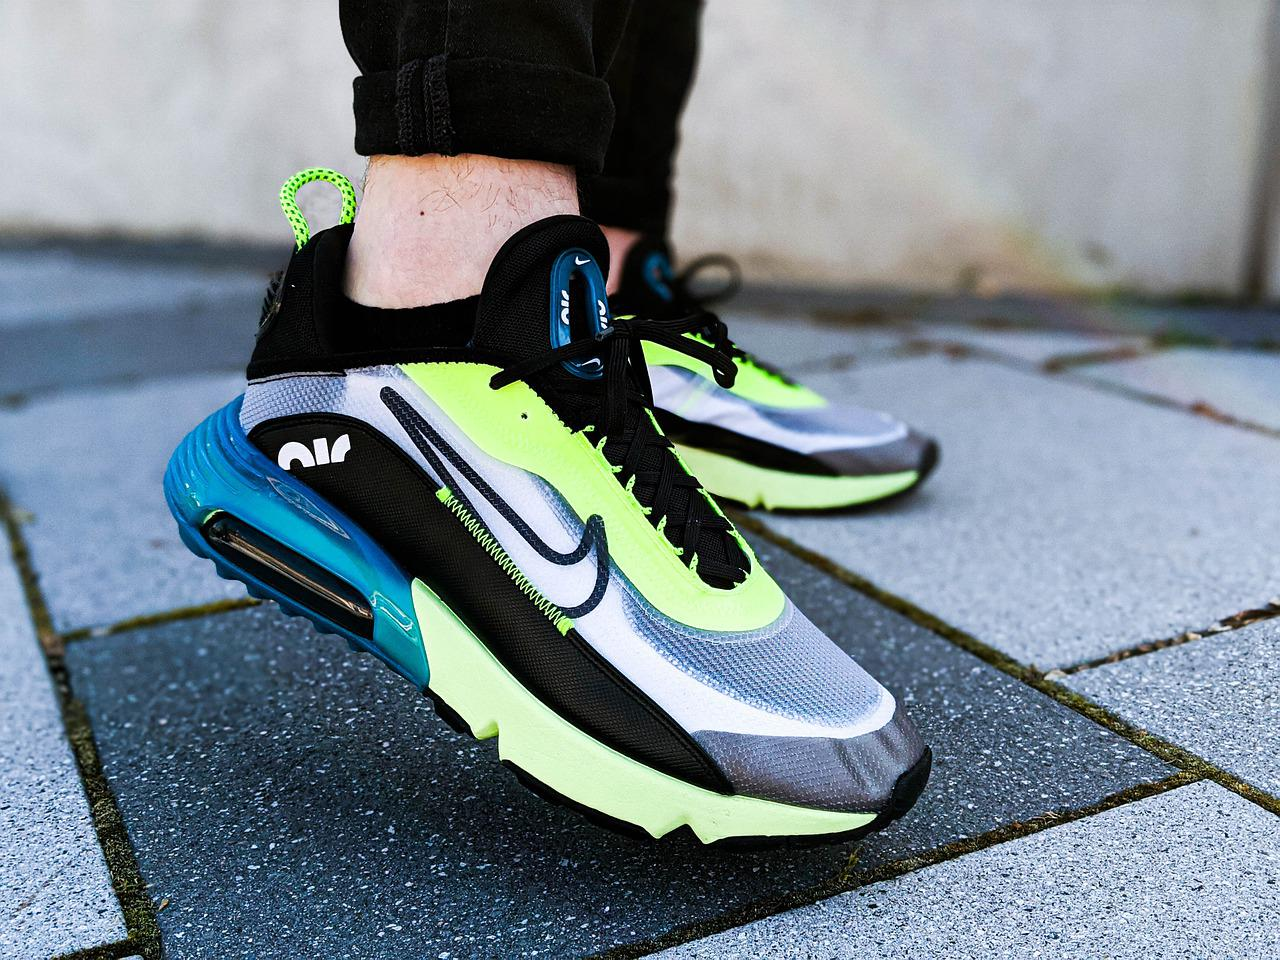 Nike Shoes Sneakers Sport - Free photo